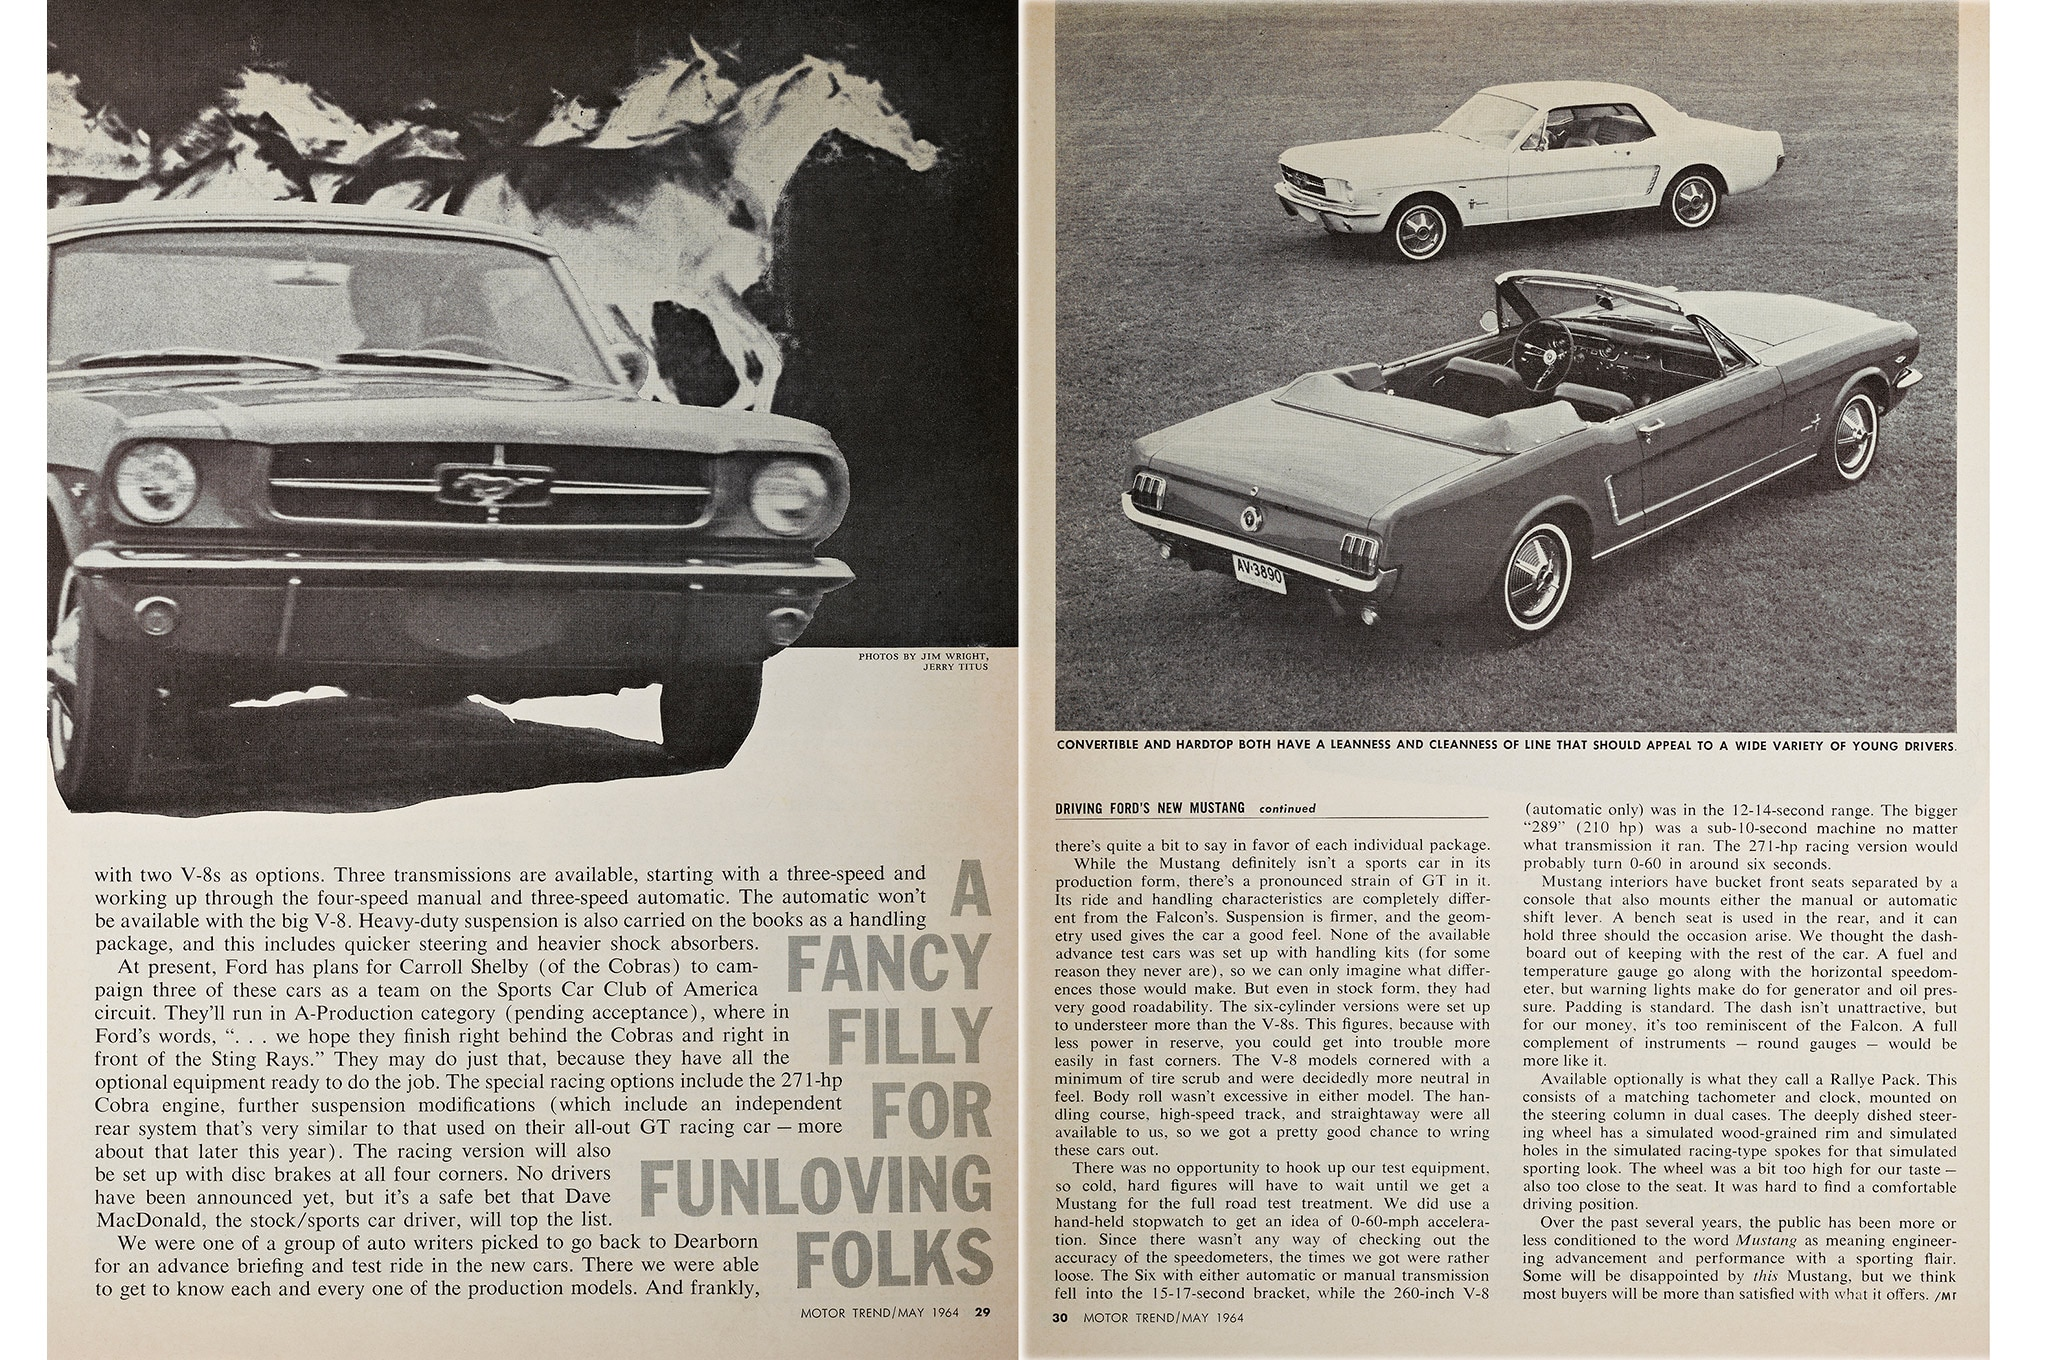 May 1964 Motor Trend Mustang Road Test Fancy Filly